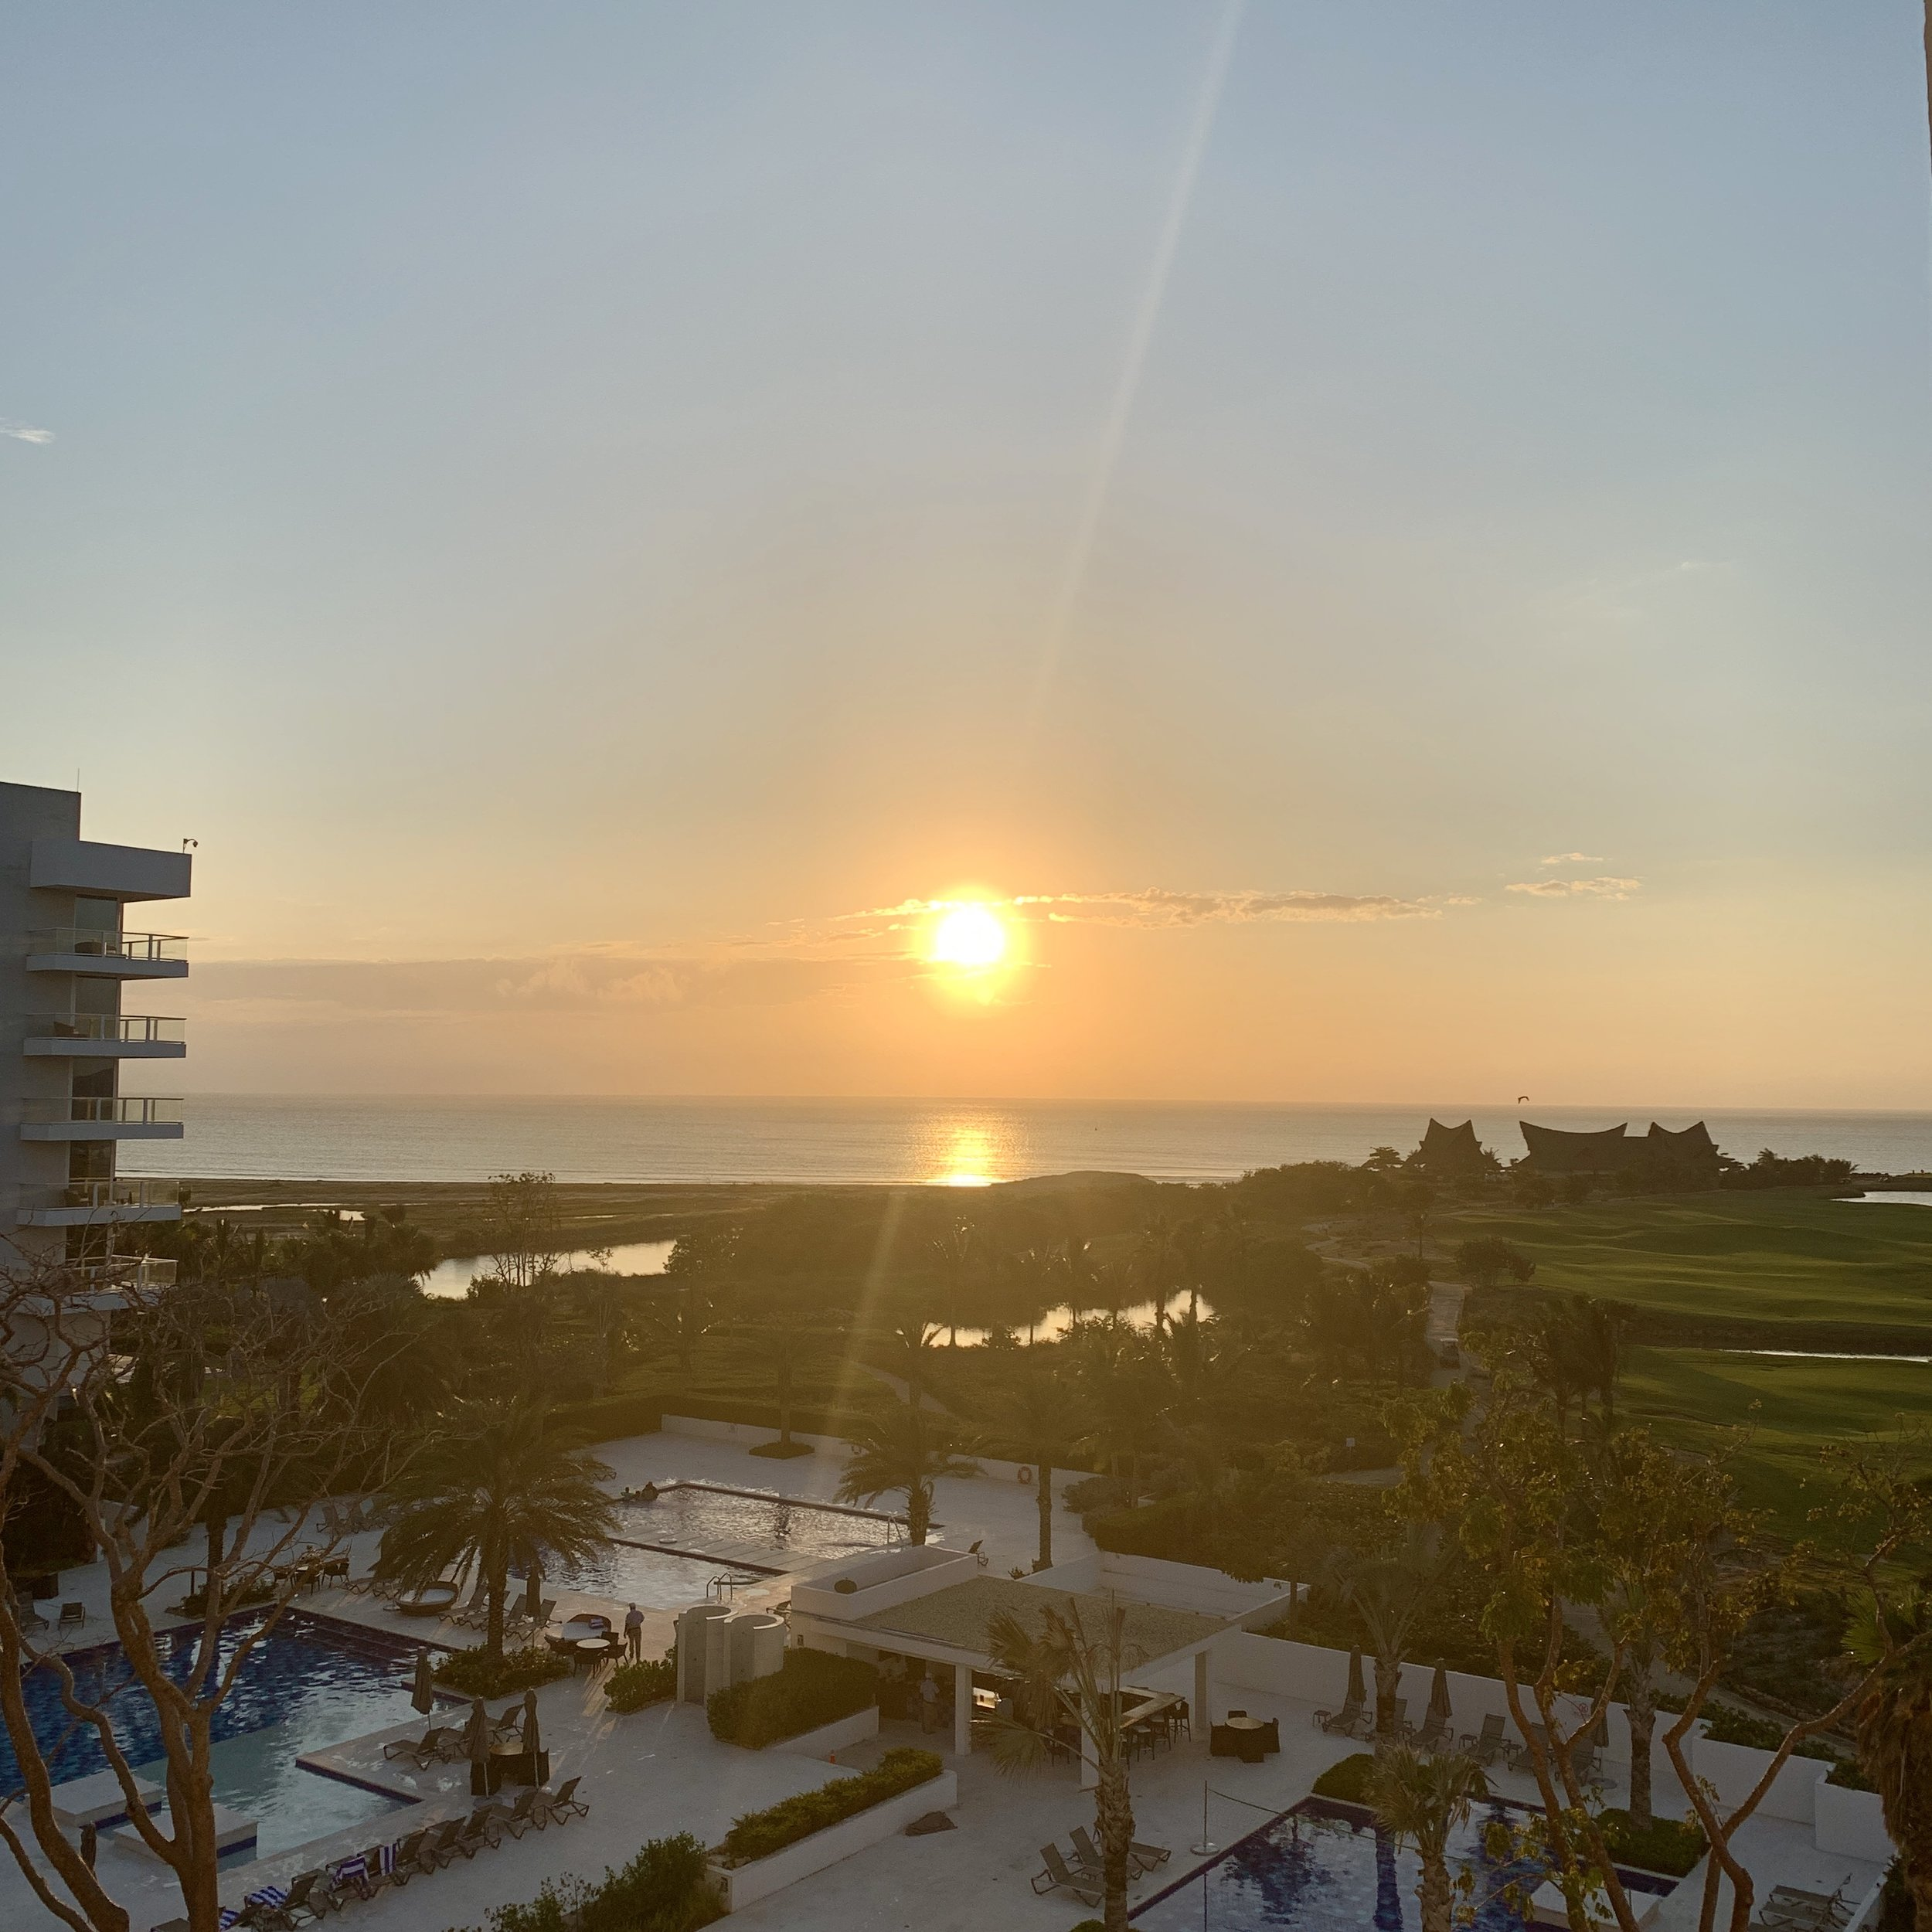 Sunrise, as seen from my suite. (That's the resort's beach club in the distance.)